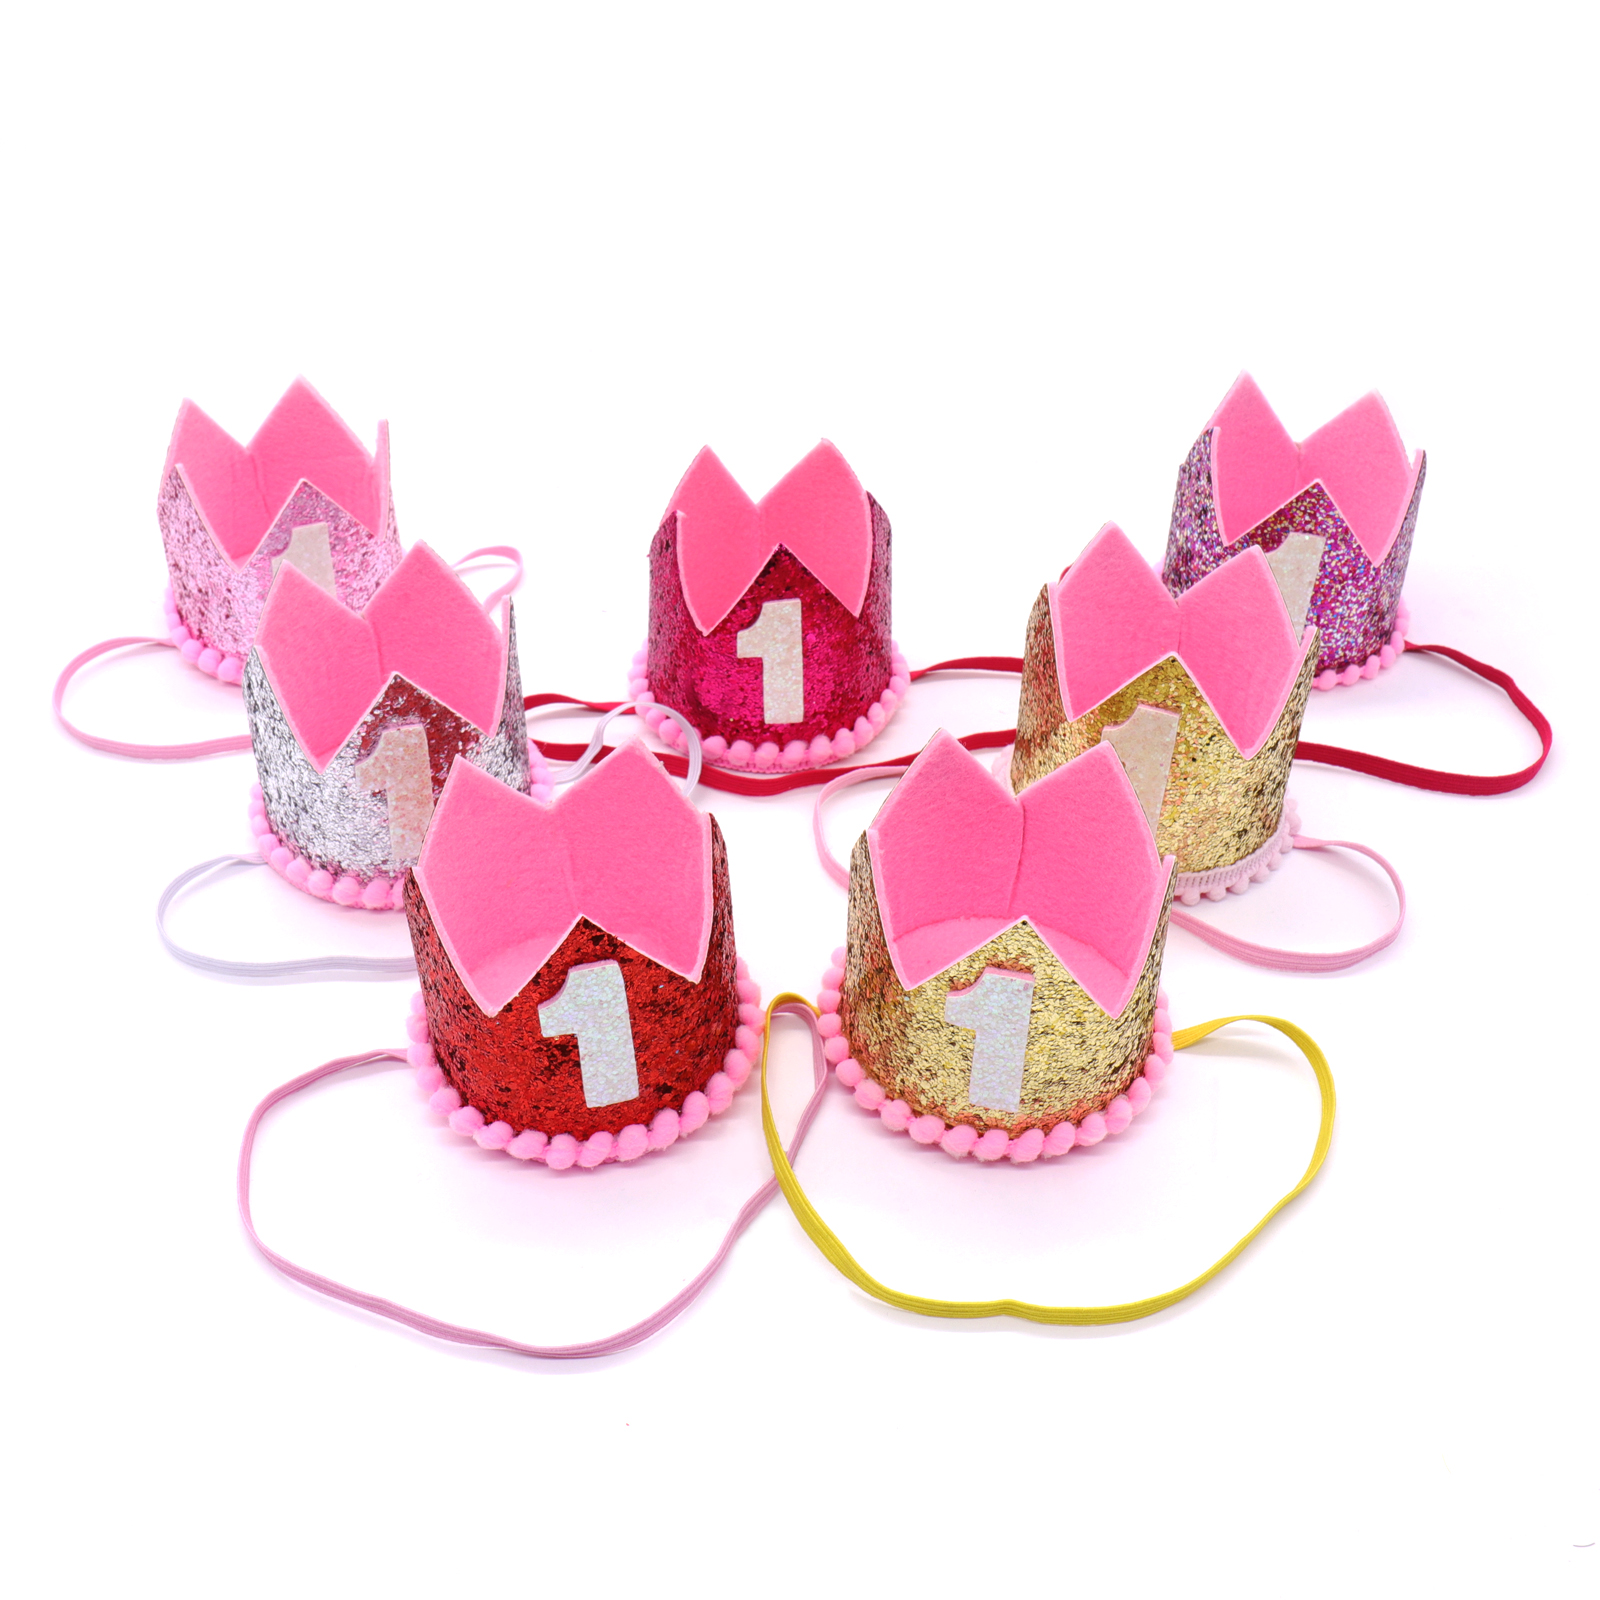 Baby Girl Boy Kids One Birthday Hat Princess Crown Birthday Party Crown Hat Hairband Baby Shower Party Photo Props Supplies